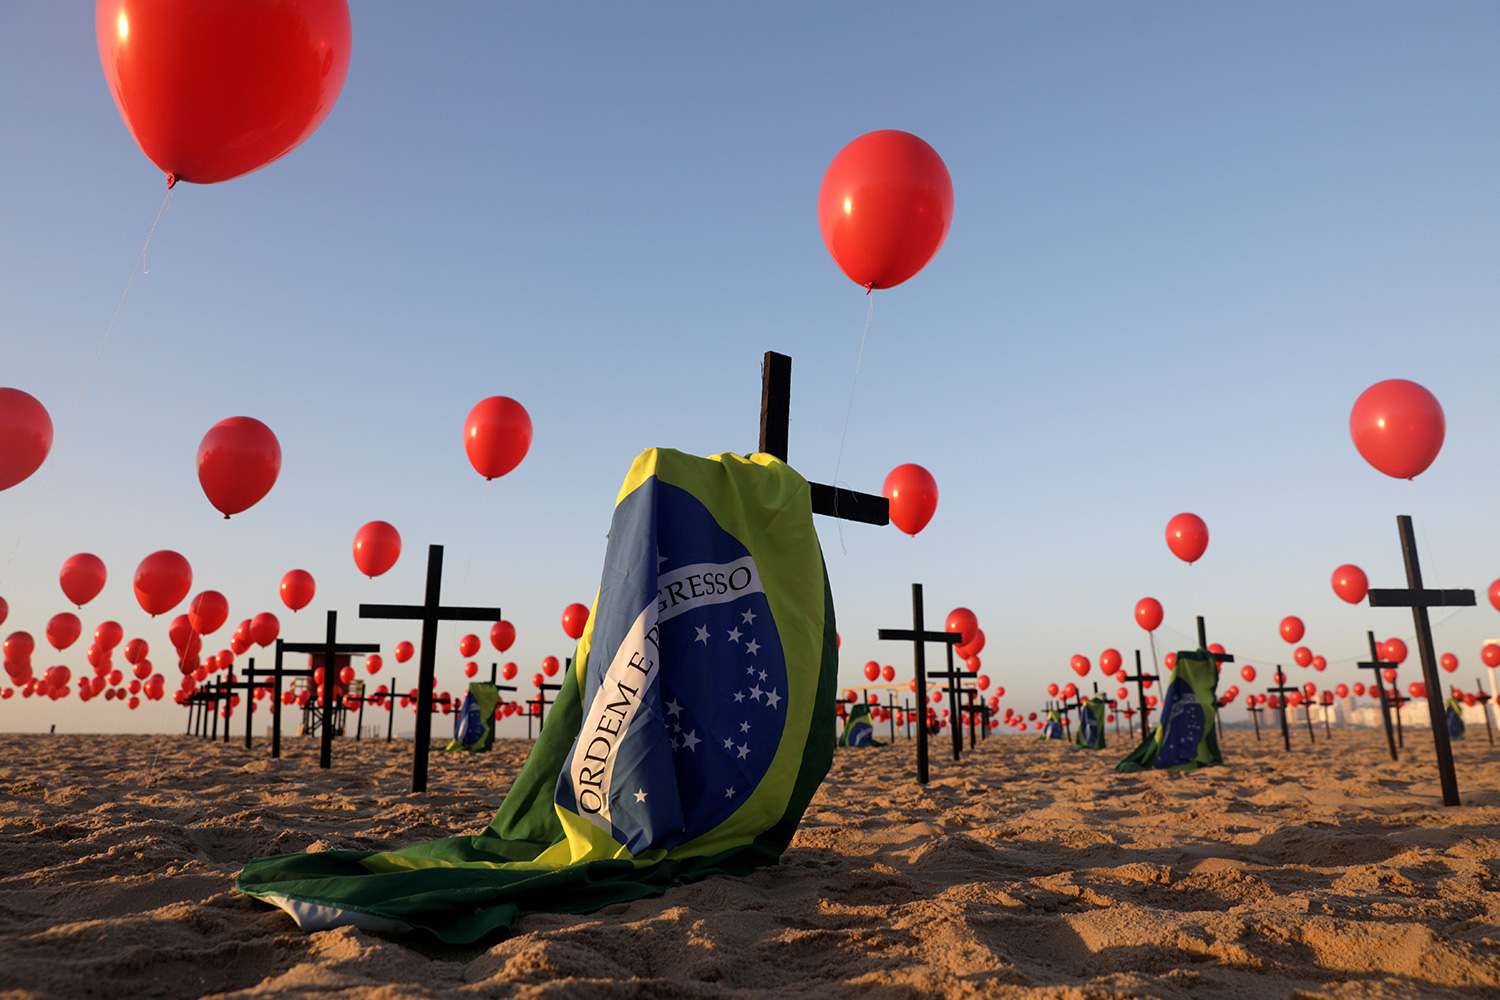 Global health security seeks to avoid installations like this one of crosses and balloons at Copacabana beach in Rio de Janeiro, Brazil, on August 8, 2020—a tribute to 100,000 victims of coronavirus. The photo shows an art installation of crosses, balloons and flag on the beach. REUTERS/Ricardo Moraes